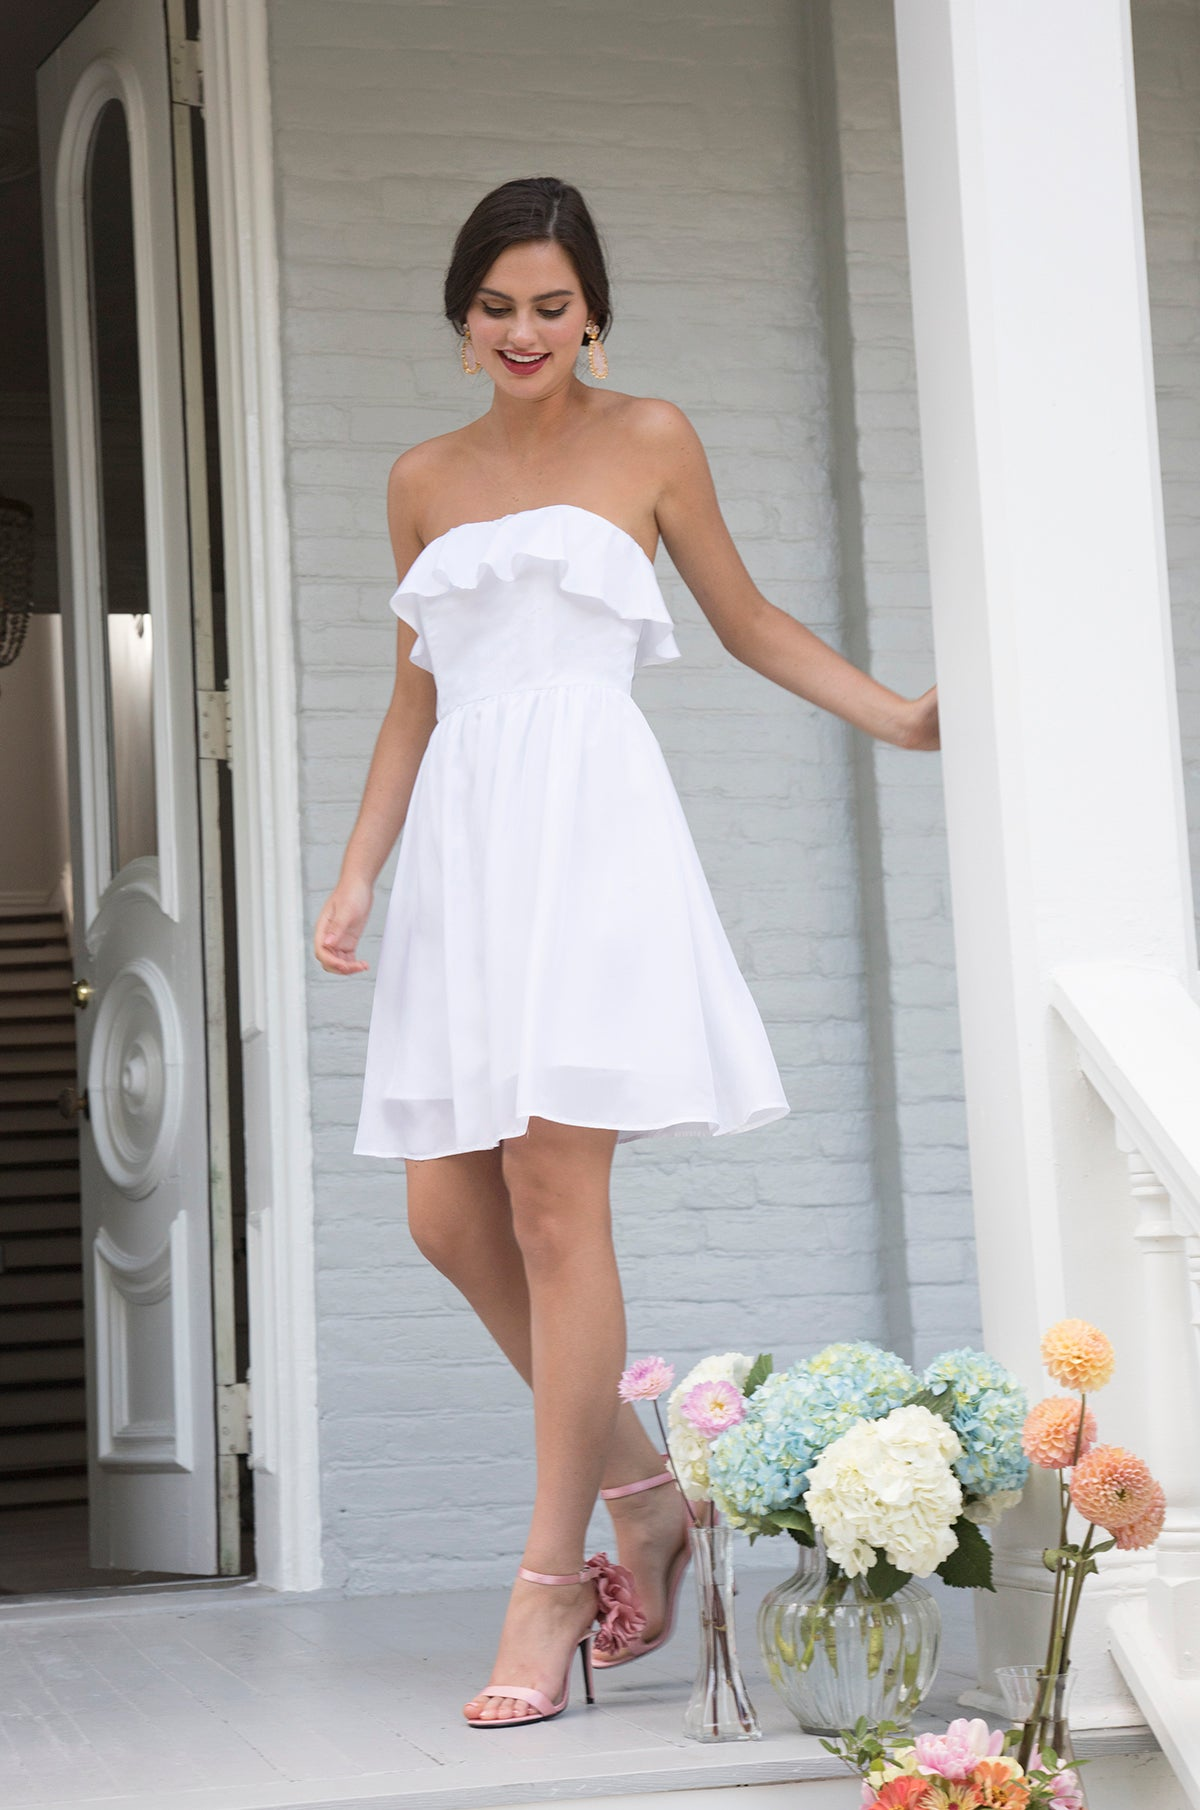 Destination Wedding Dresses.James Flowy Casual Chic Bachelorette Party Destination Wedding Dress